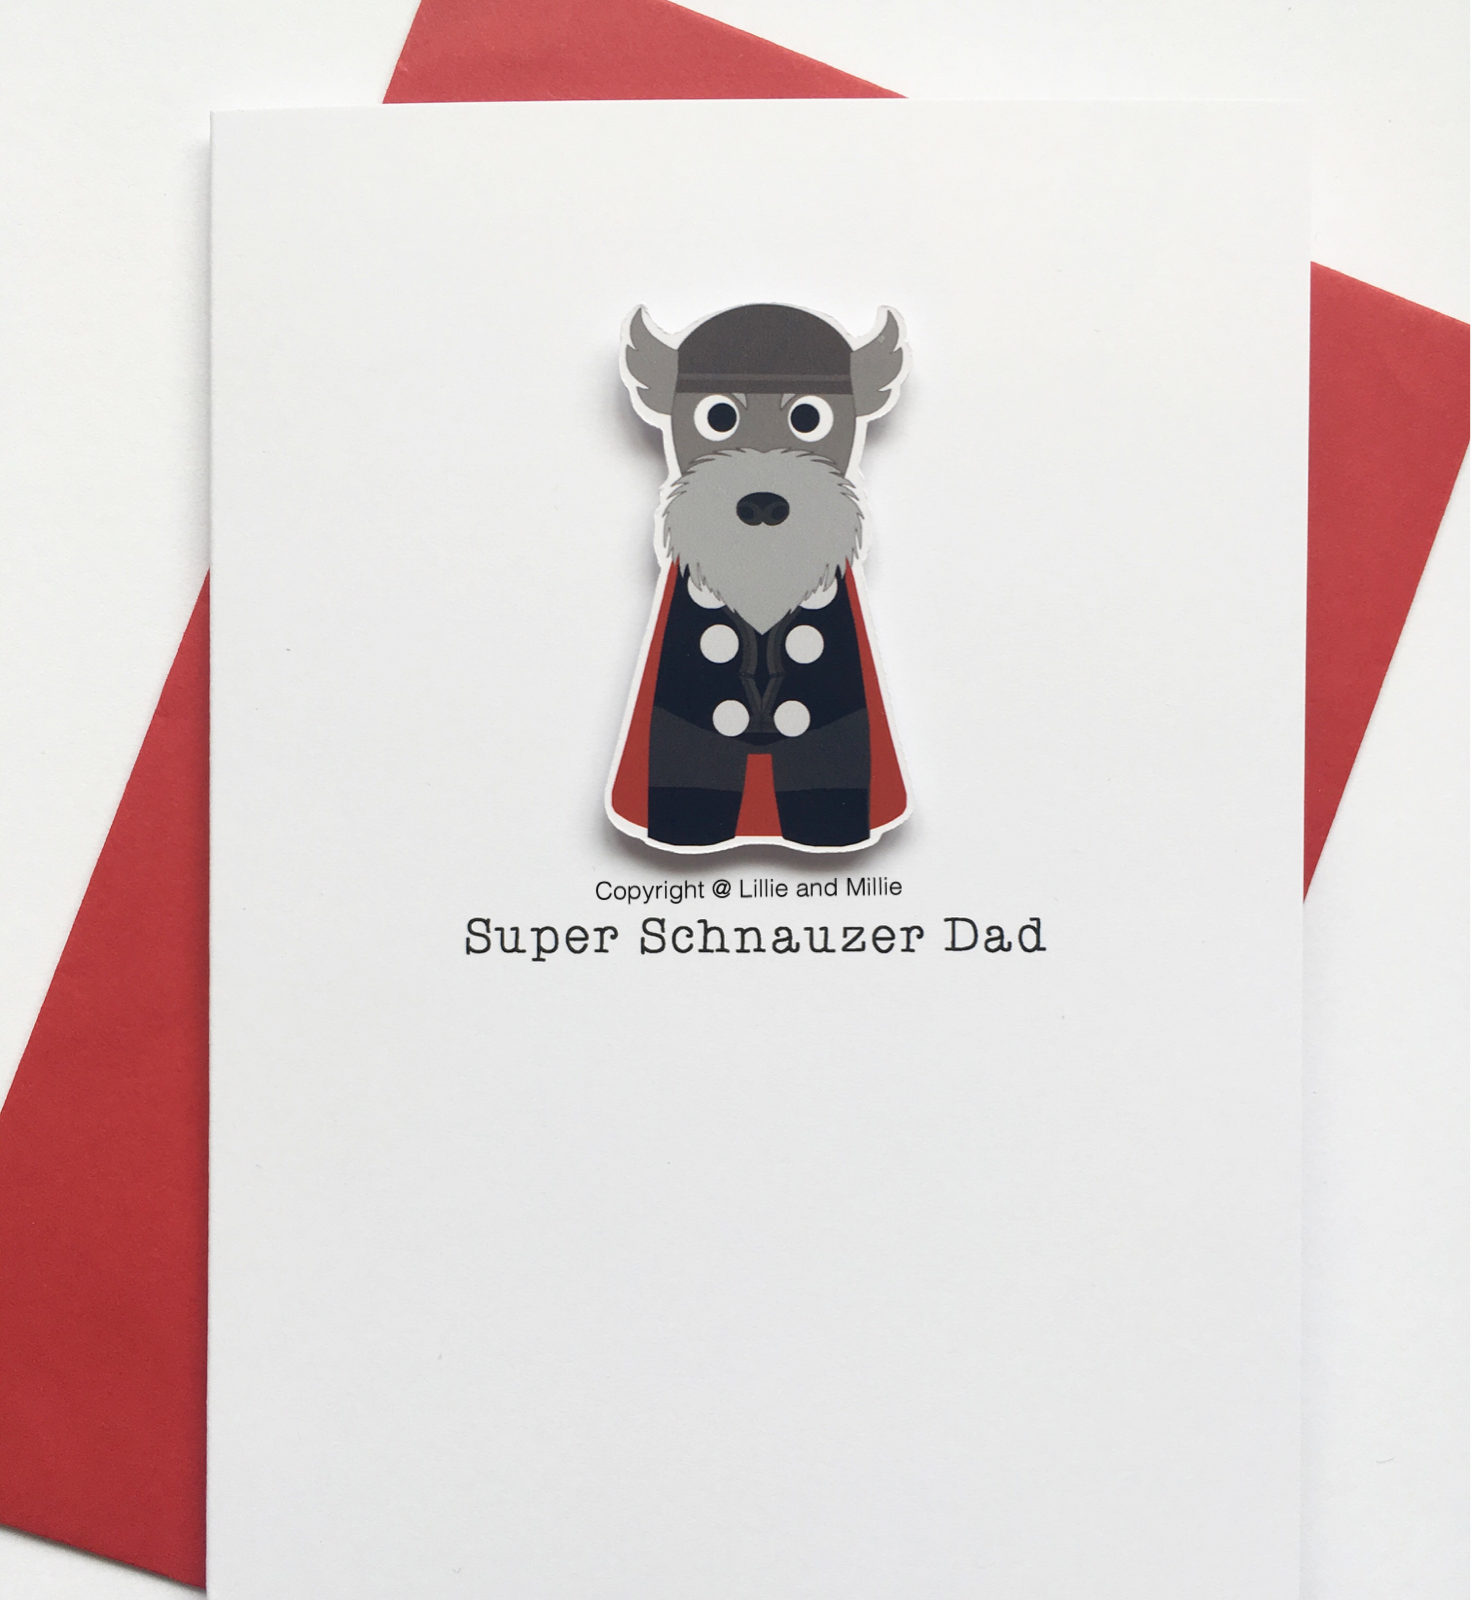 Cute and Cuddly Super Thor Schnauzer Dad Card